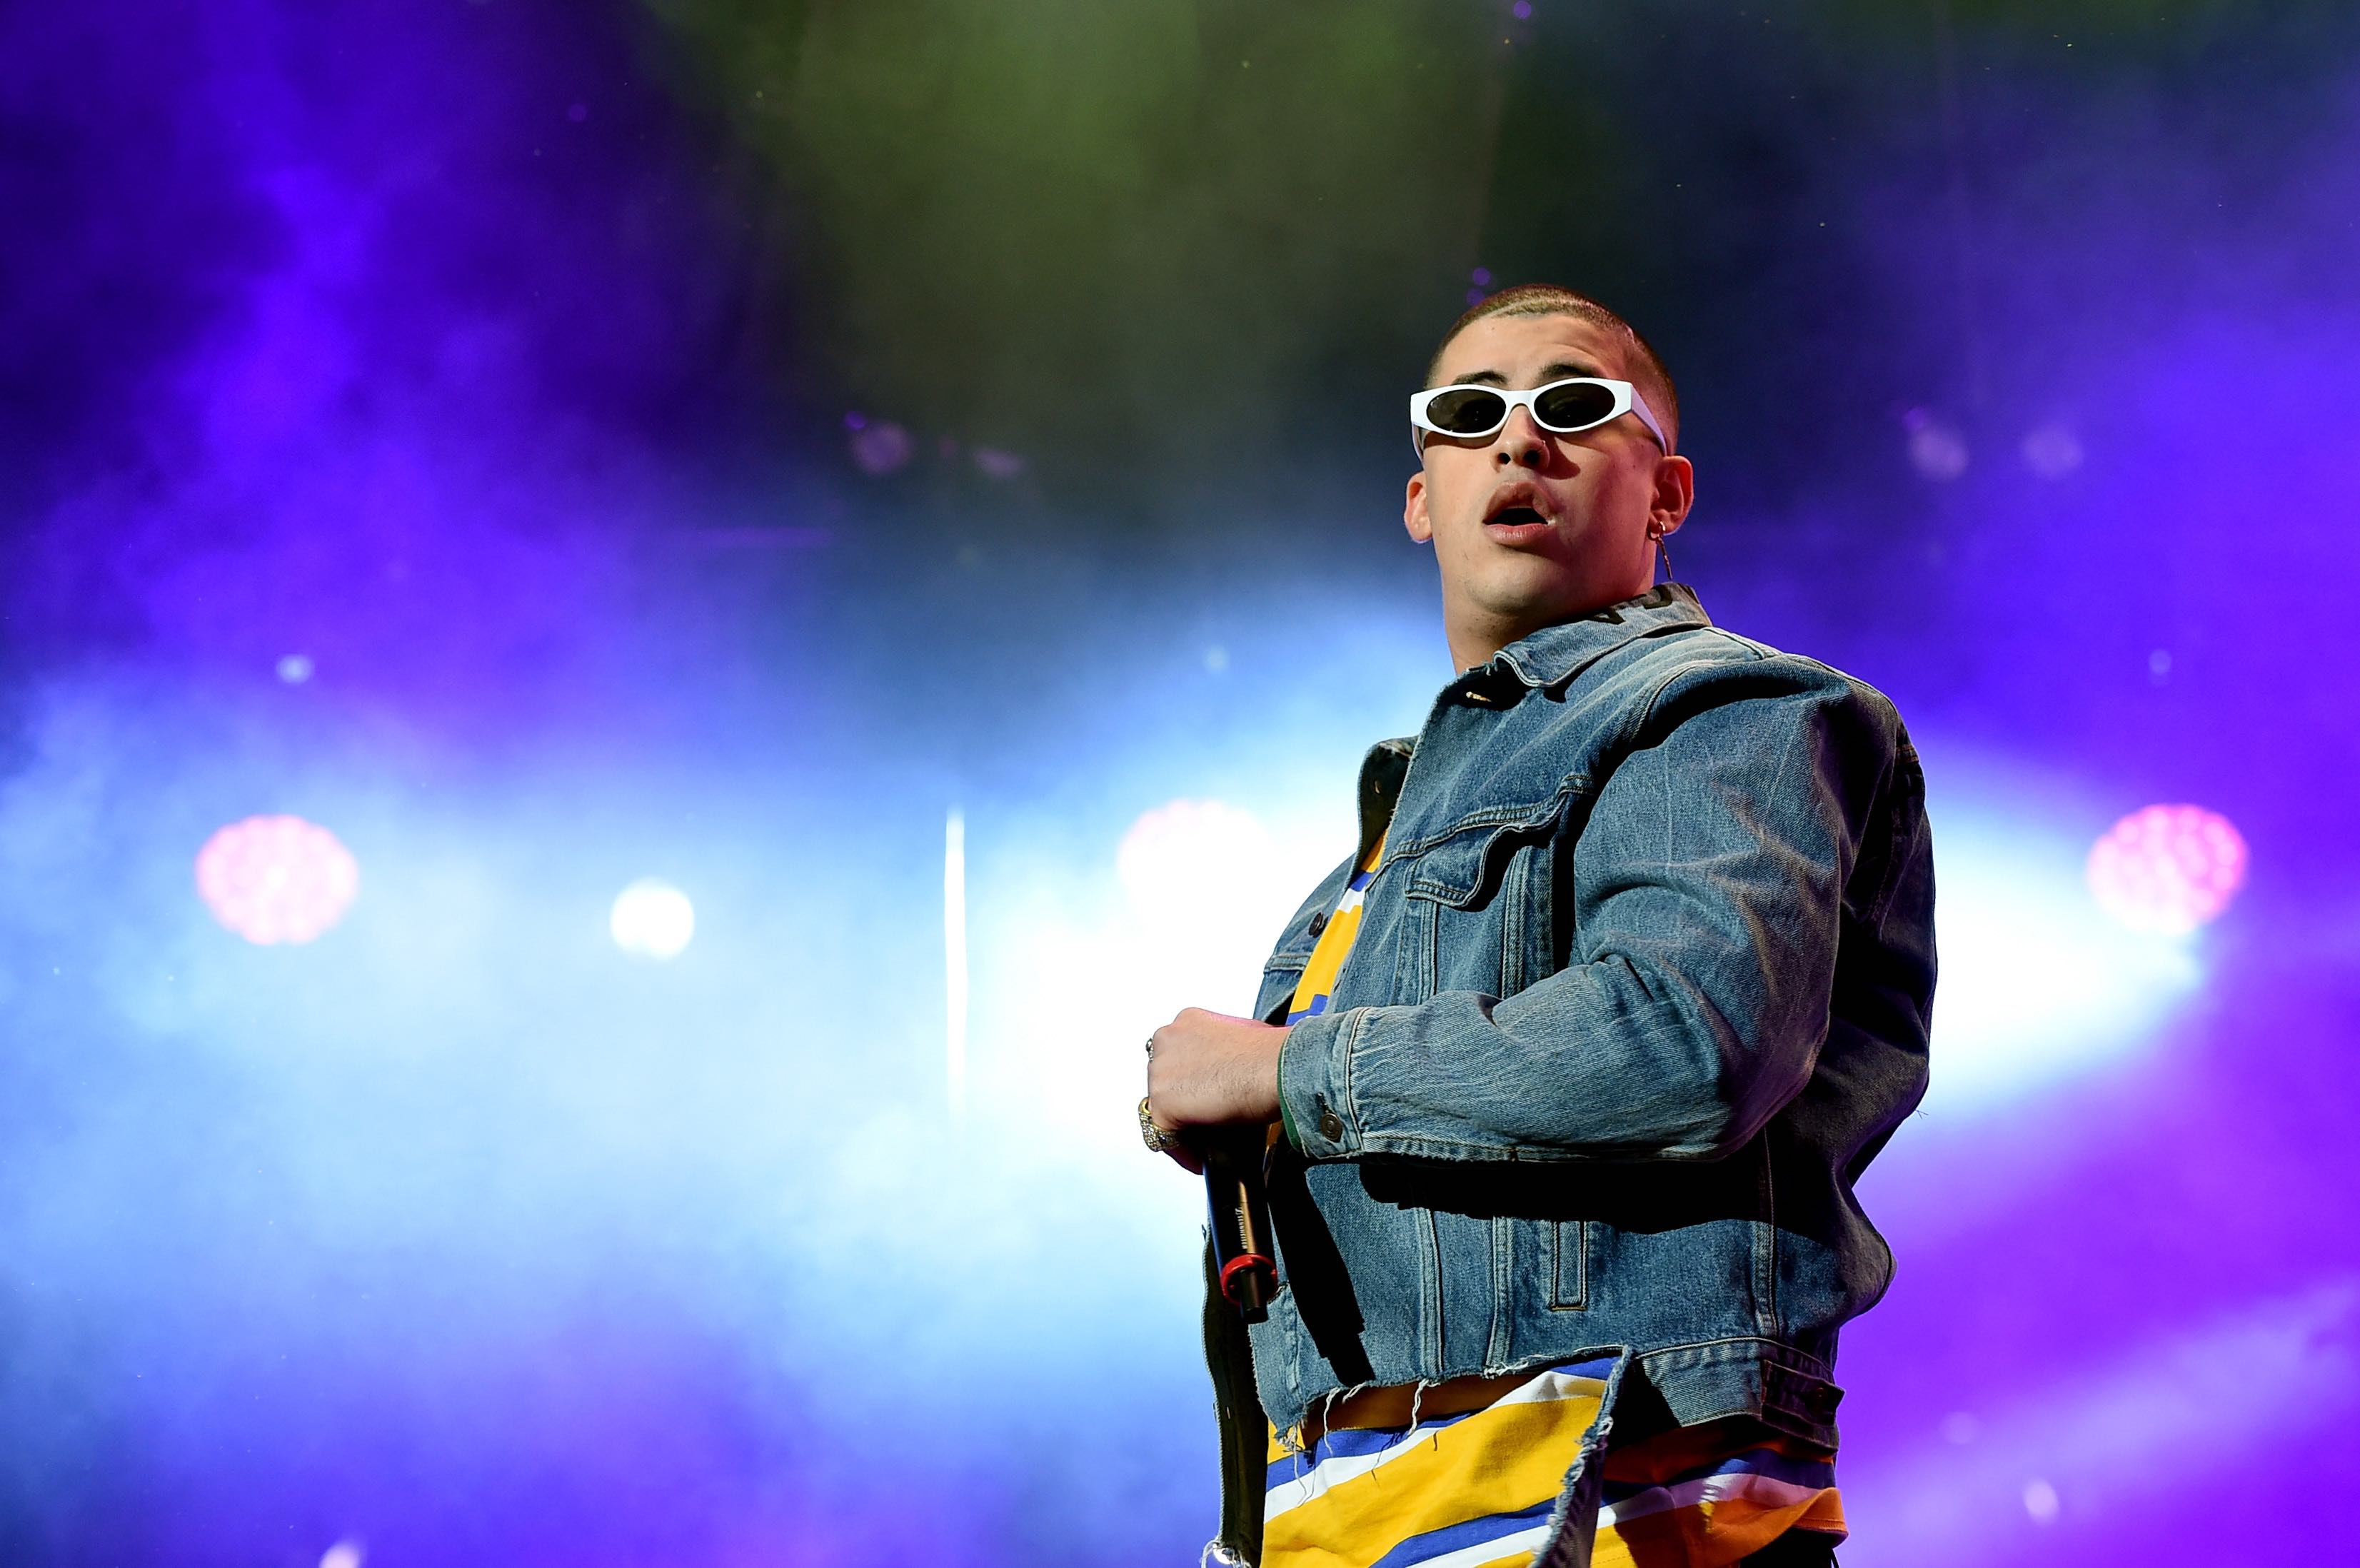 Bad Bunny's Recent Attention to Puerto Rican Politics Is the Sign of an Artistic Evolution